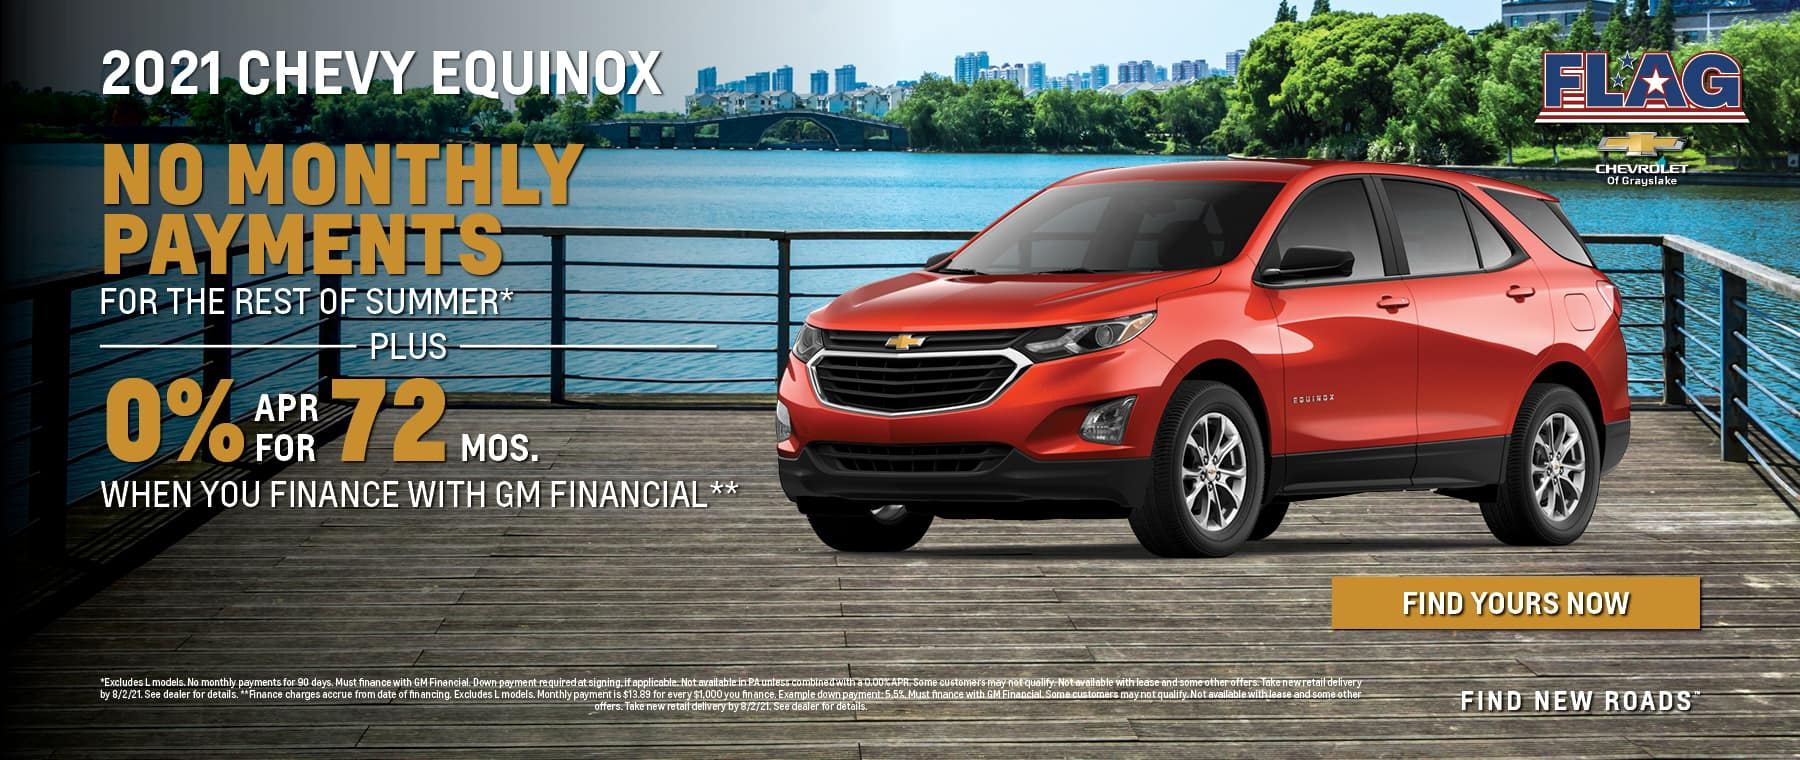 0% APR for 72 Months for 2021 Chevy Equinox when using GM Financial